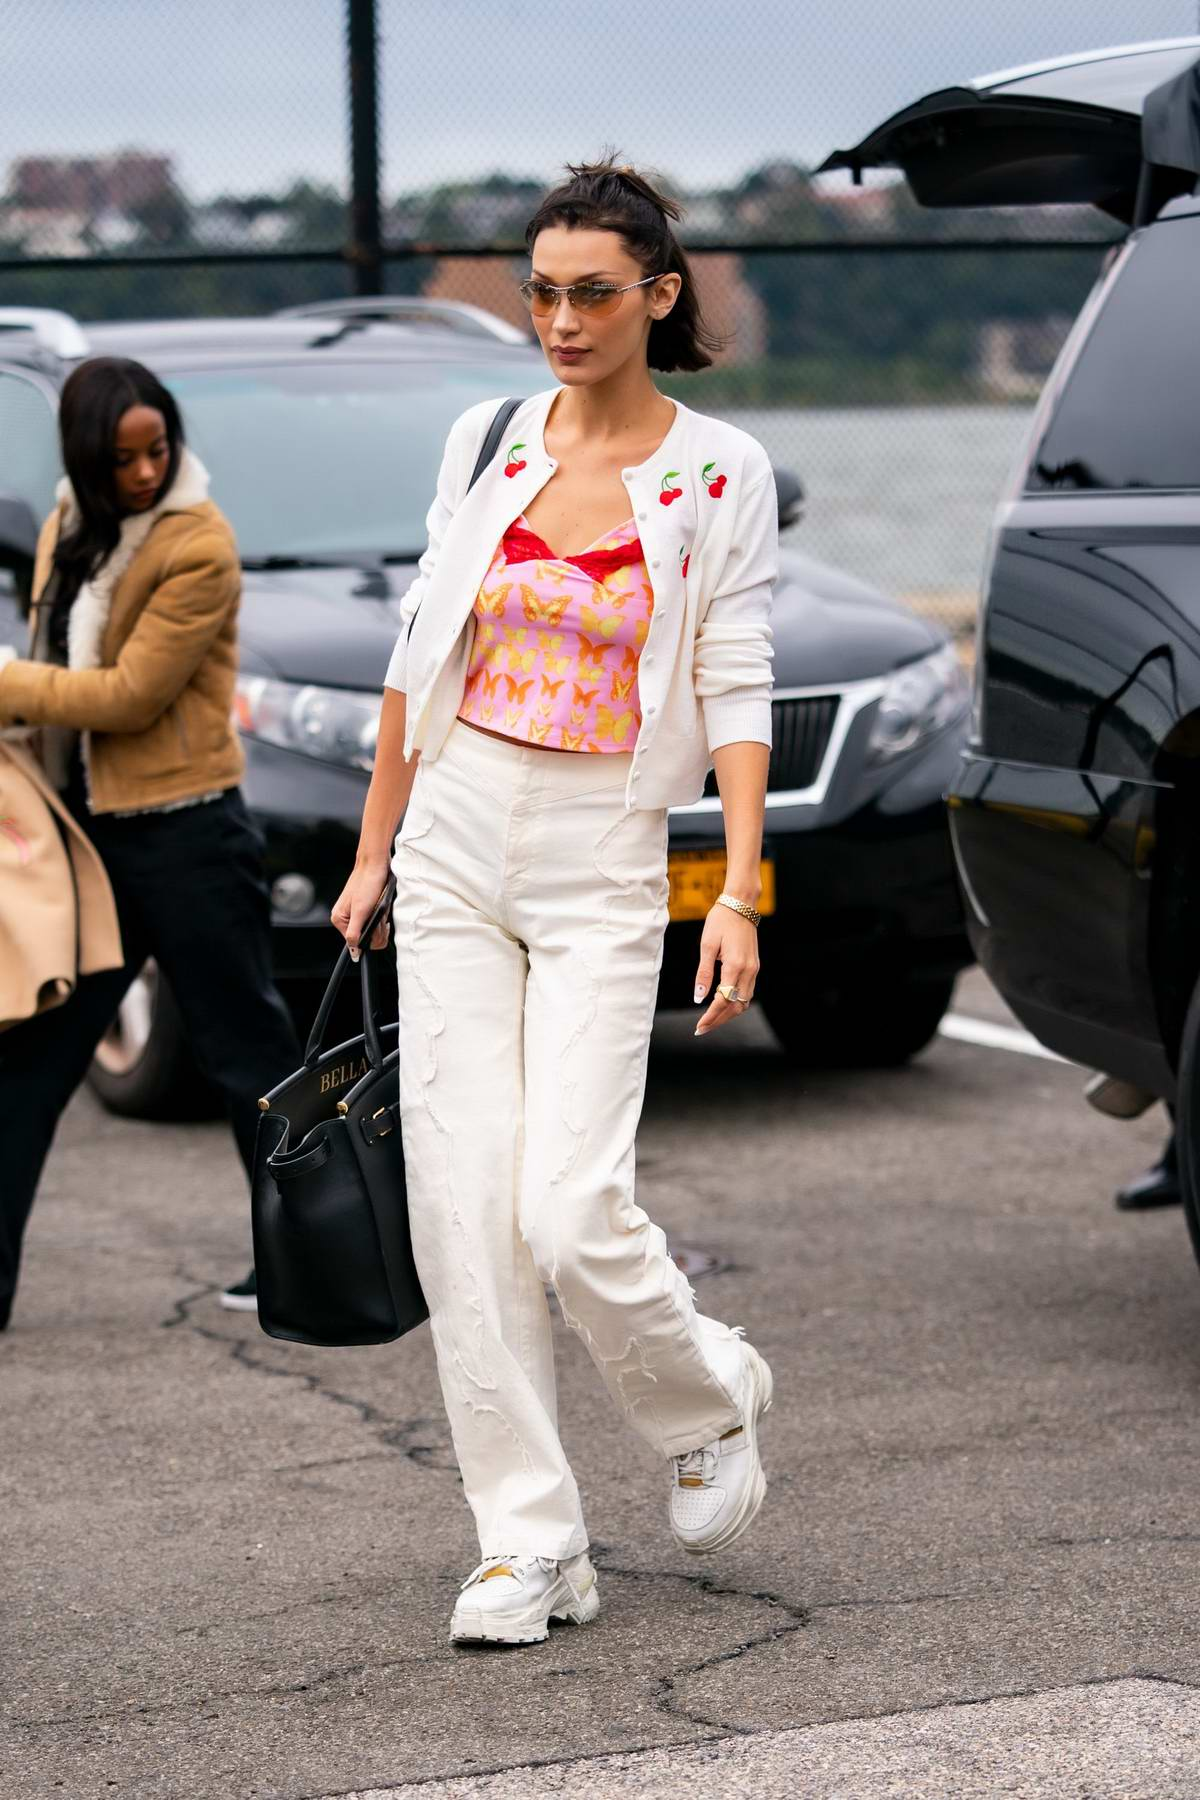 Bella Hadid looks great in white cardigan with matching pants as she takes a helicopter out of New York City